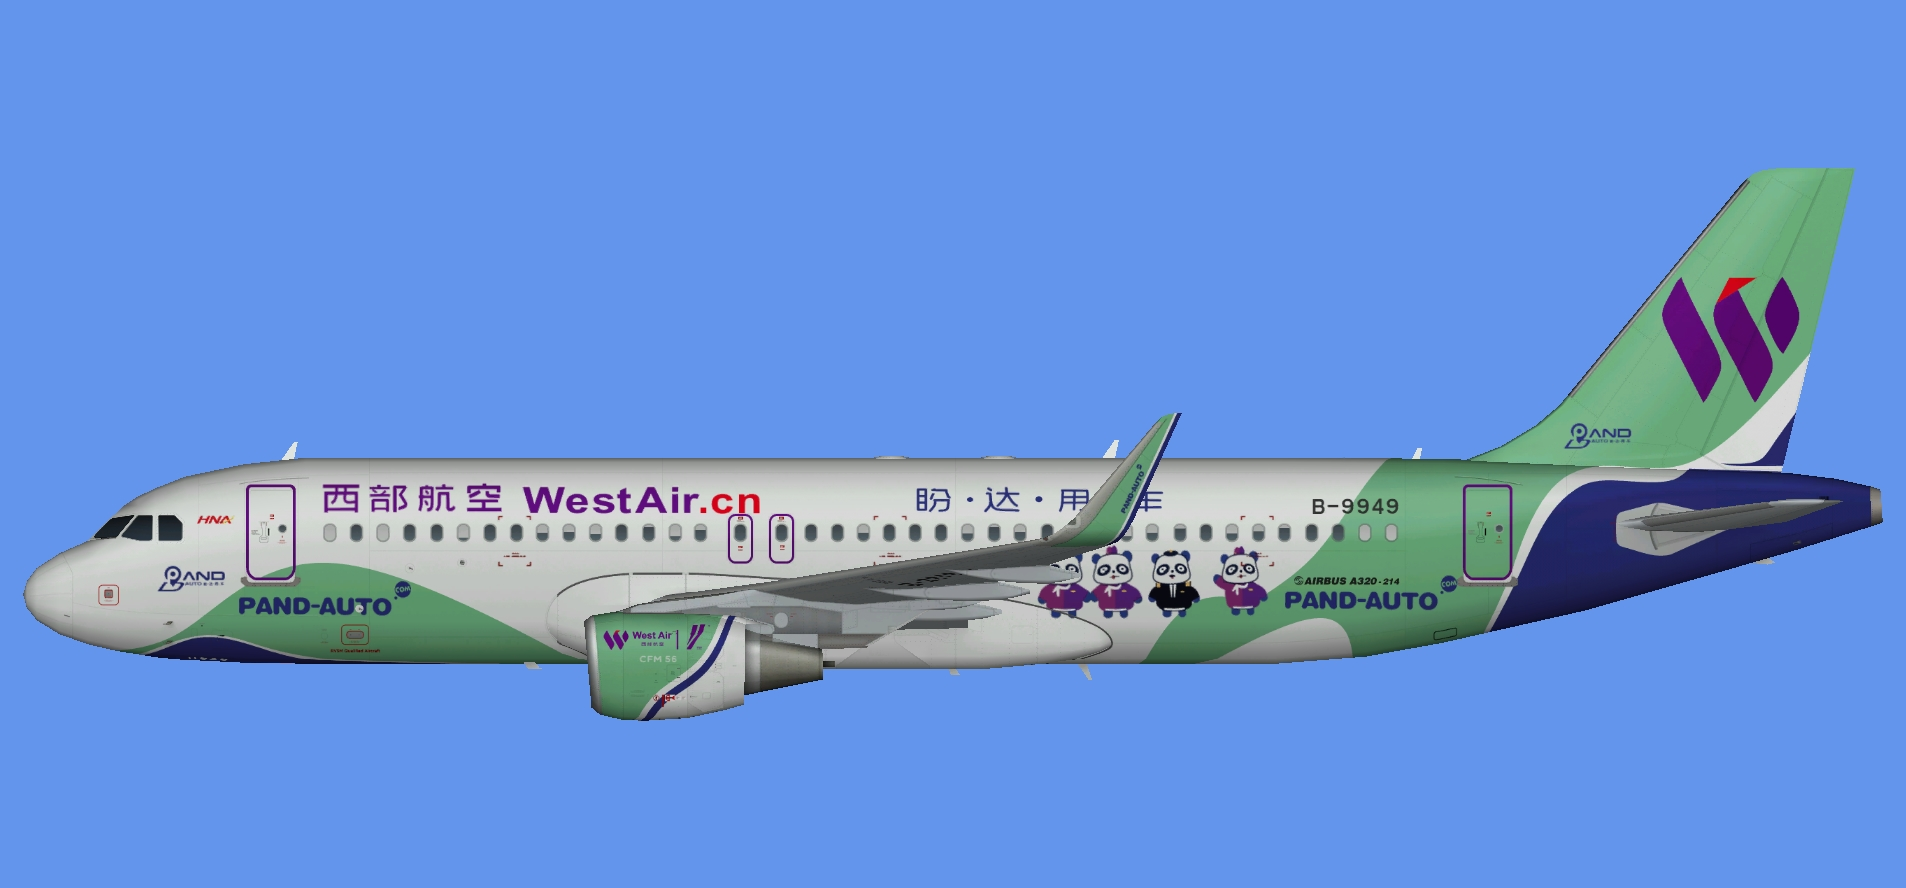 West Air A320 Pand Auto